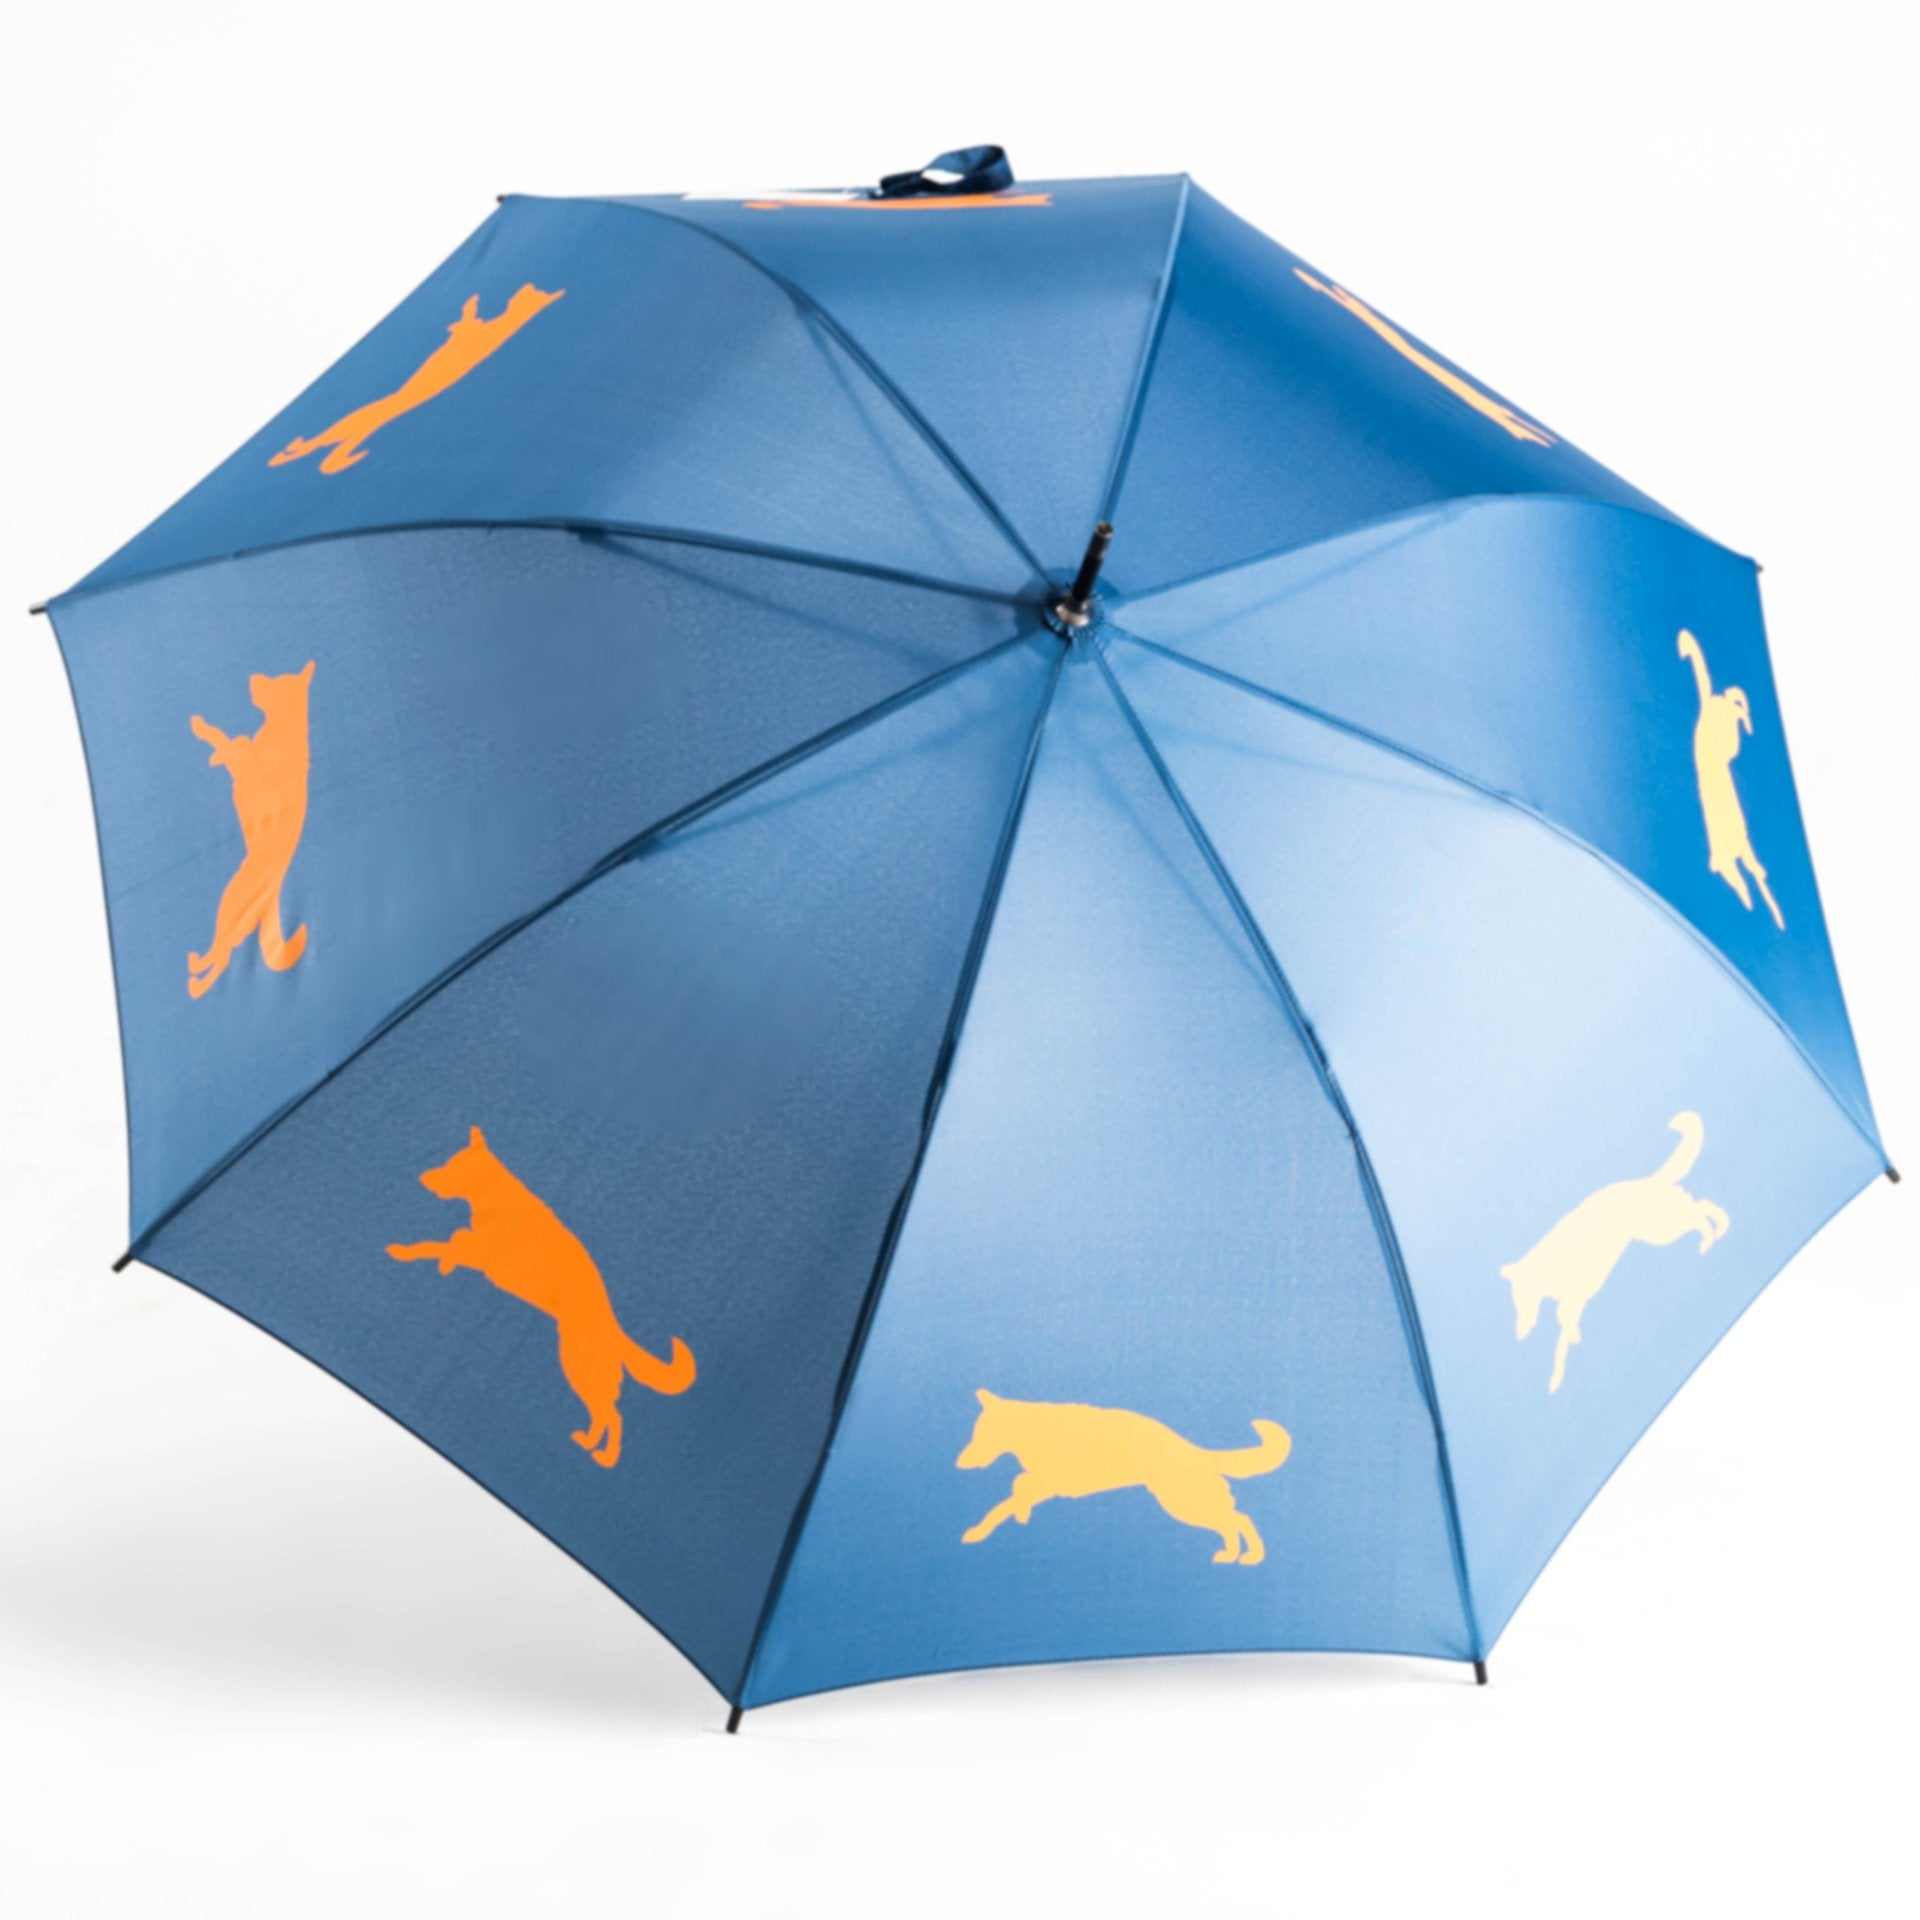 Golden Retriever umbrella